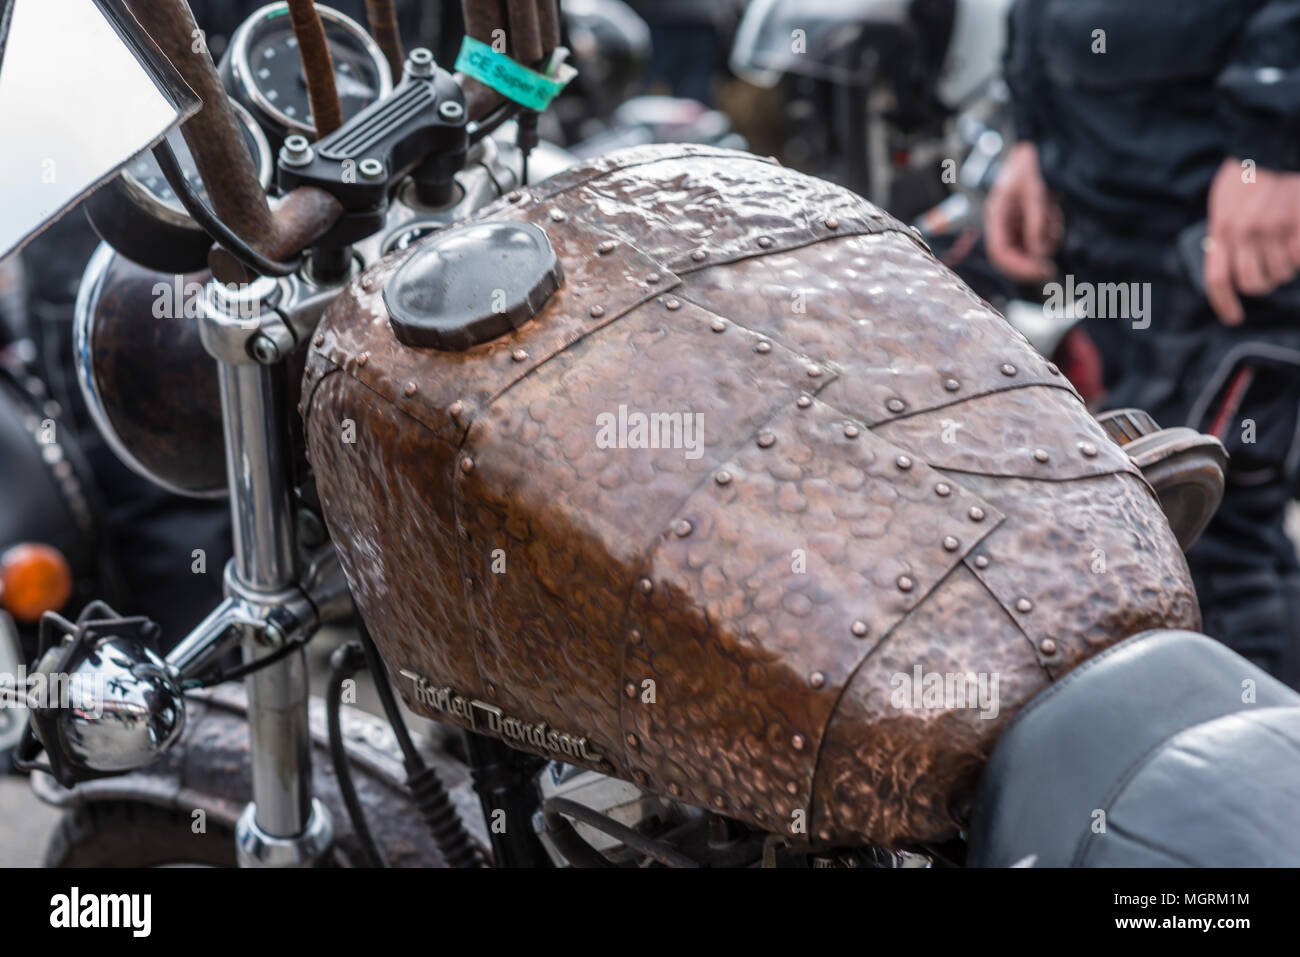 RIGA, LATVIA - APRIL 28, 2018: 2018 Moto Season Opening Event. A close-up of the most interesting details and attributes of motorcycles parked at the  - Stock Image